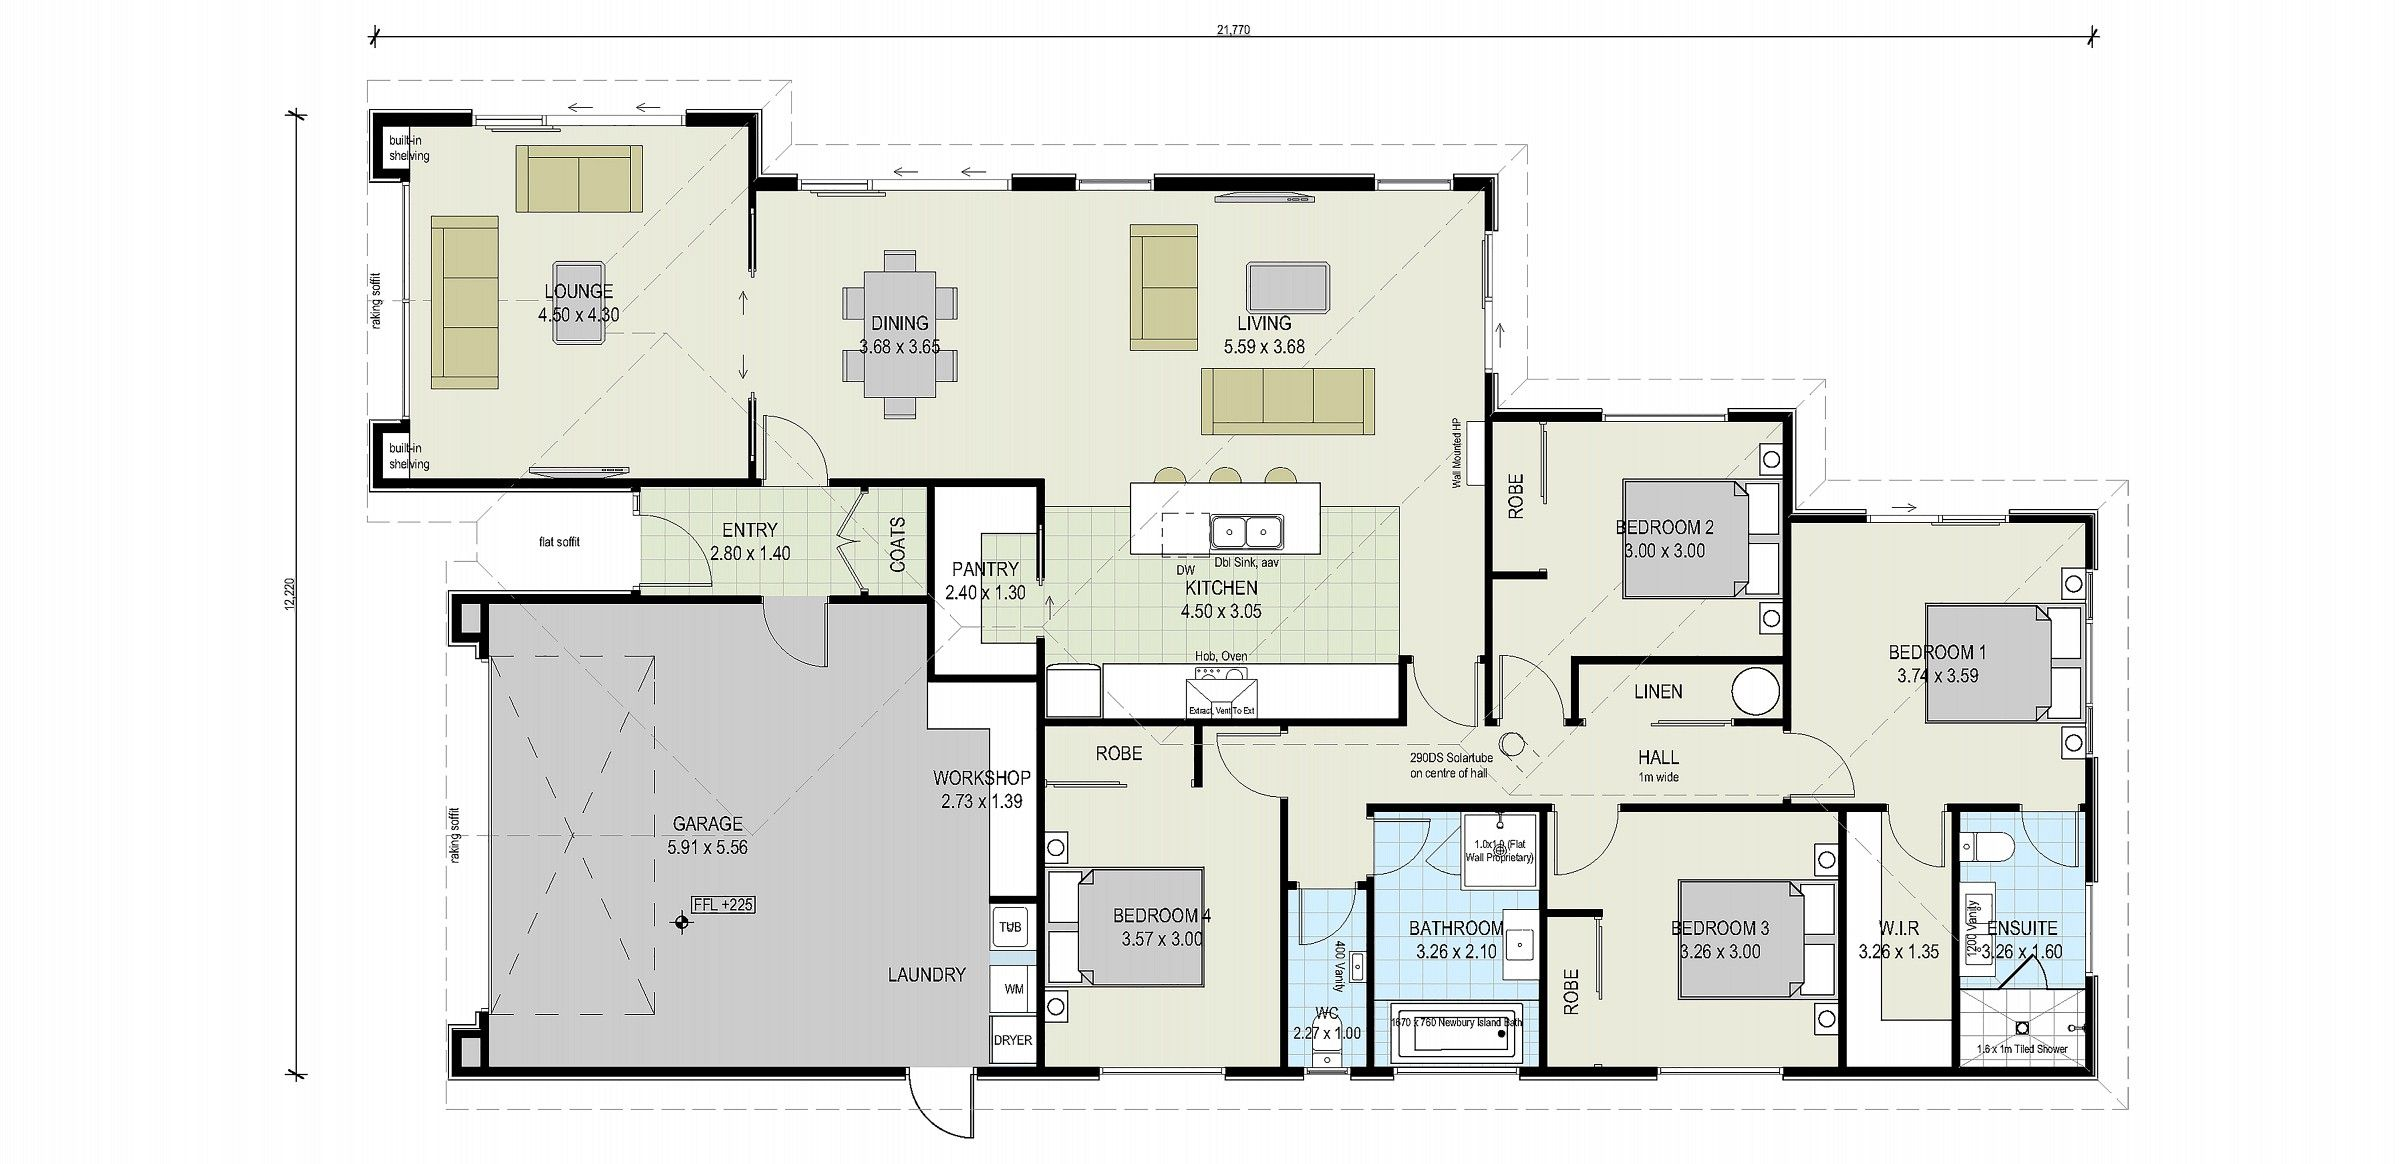 Mike Greer Homes Showhomes House Plans Australia Floor Plans Home Building Companies